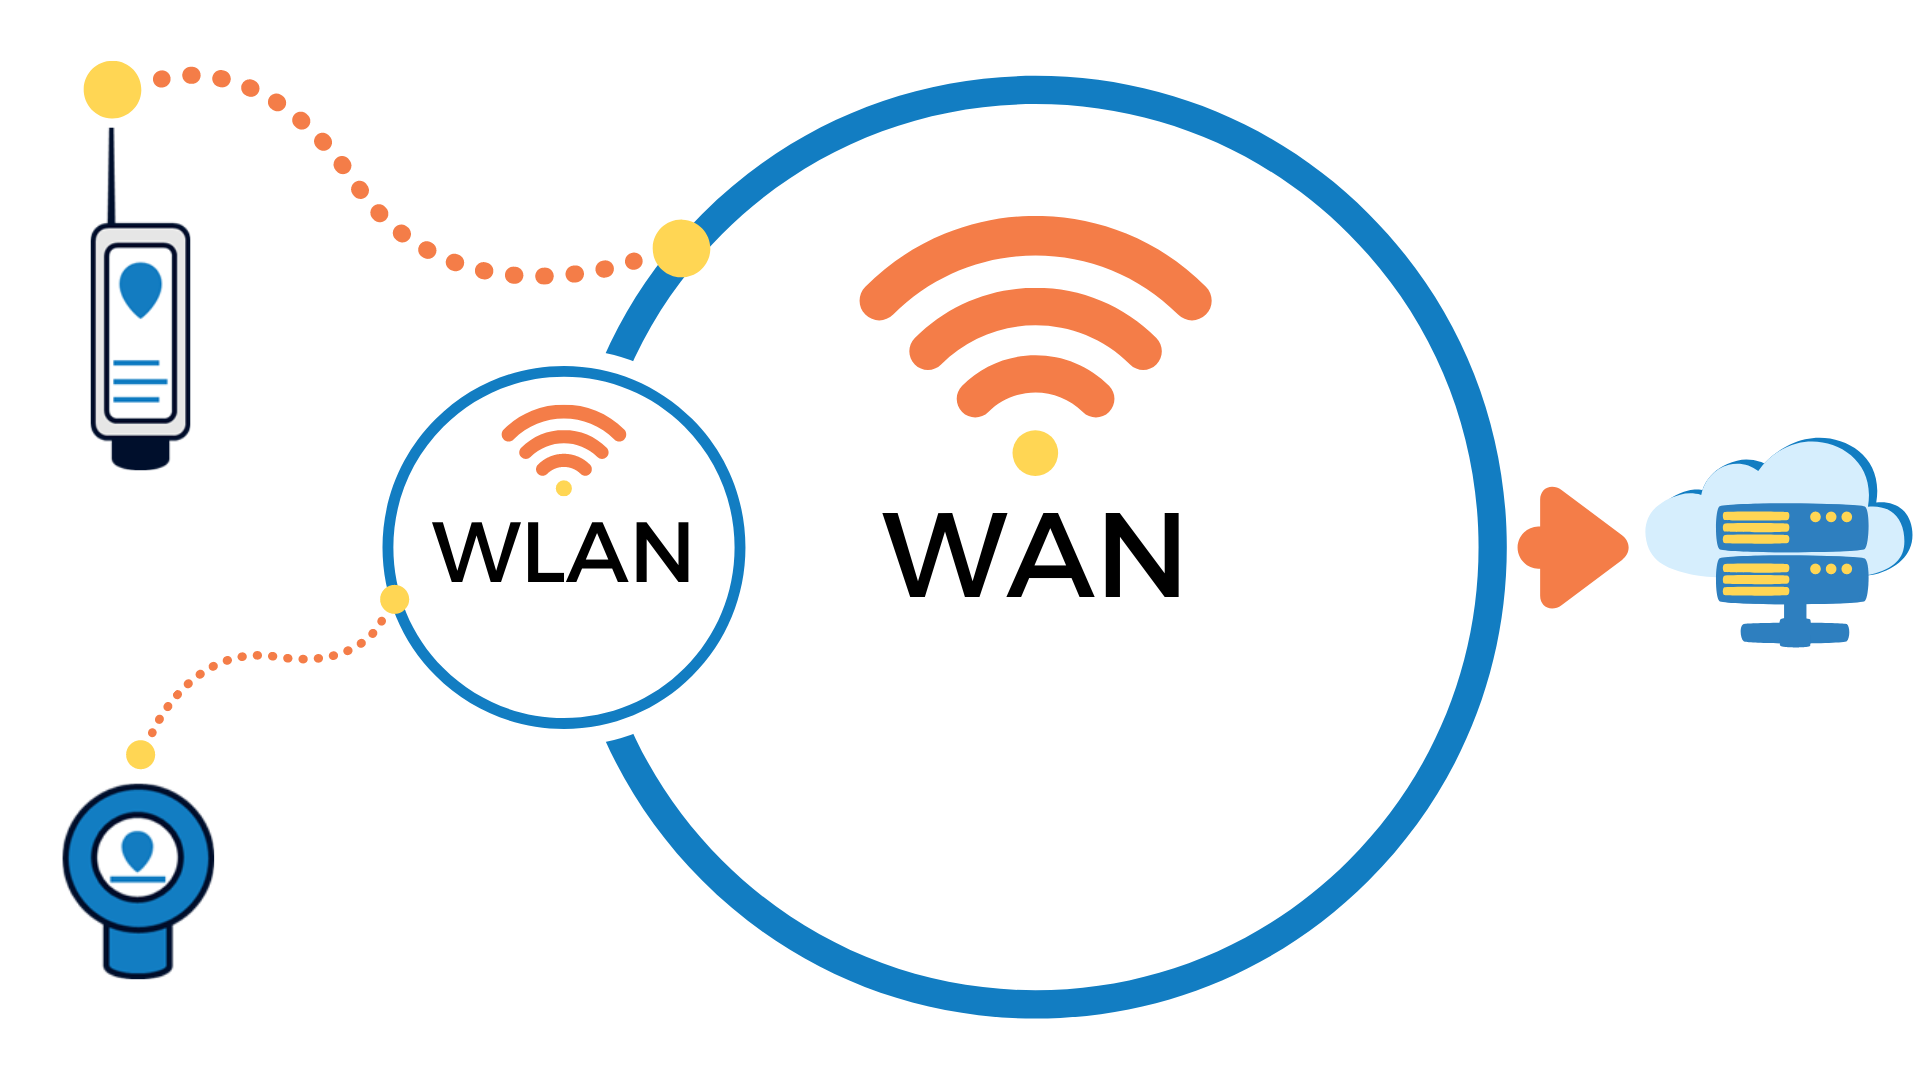 wide area networks versus local wireless networks for water tank monitor